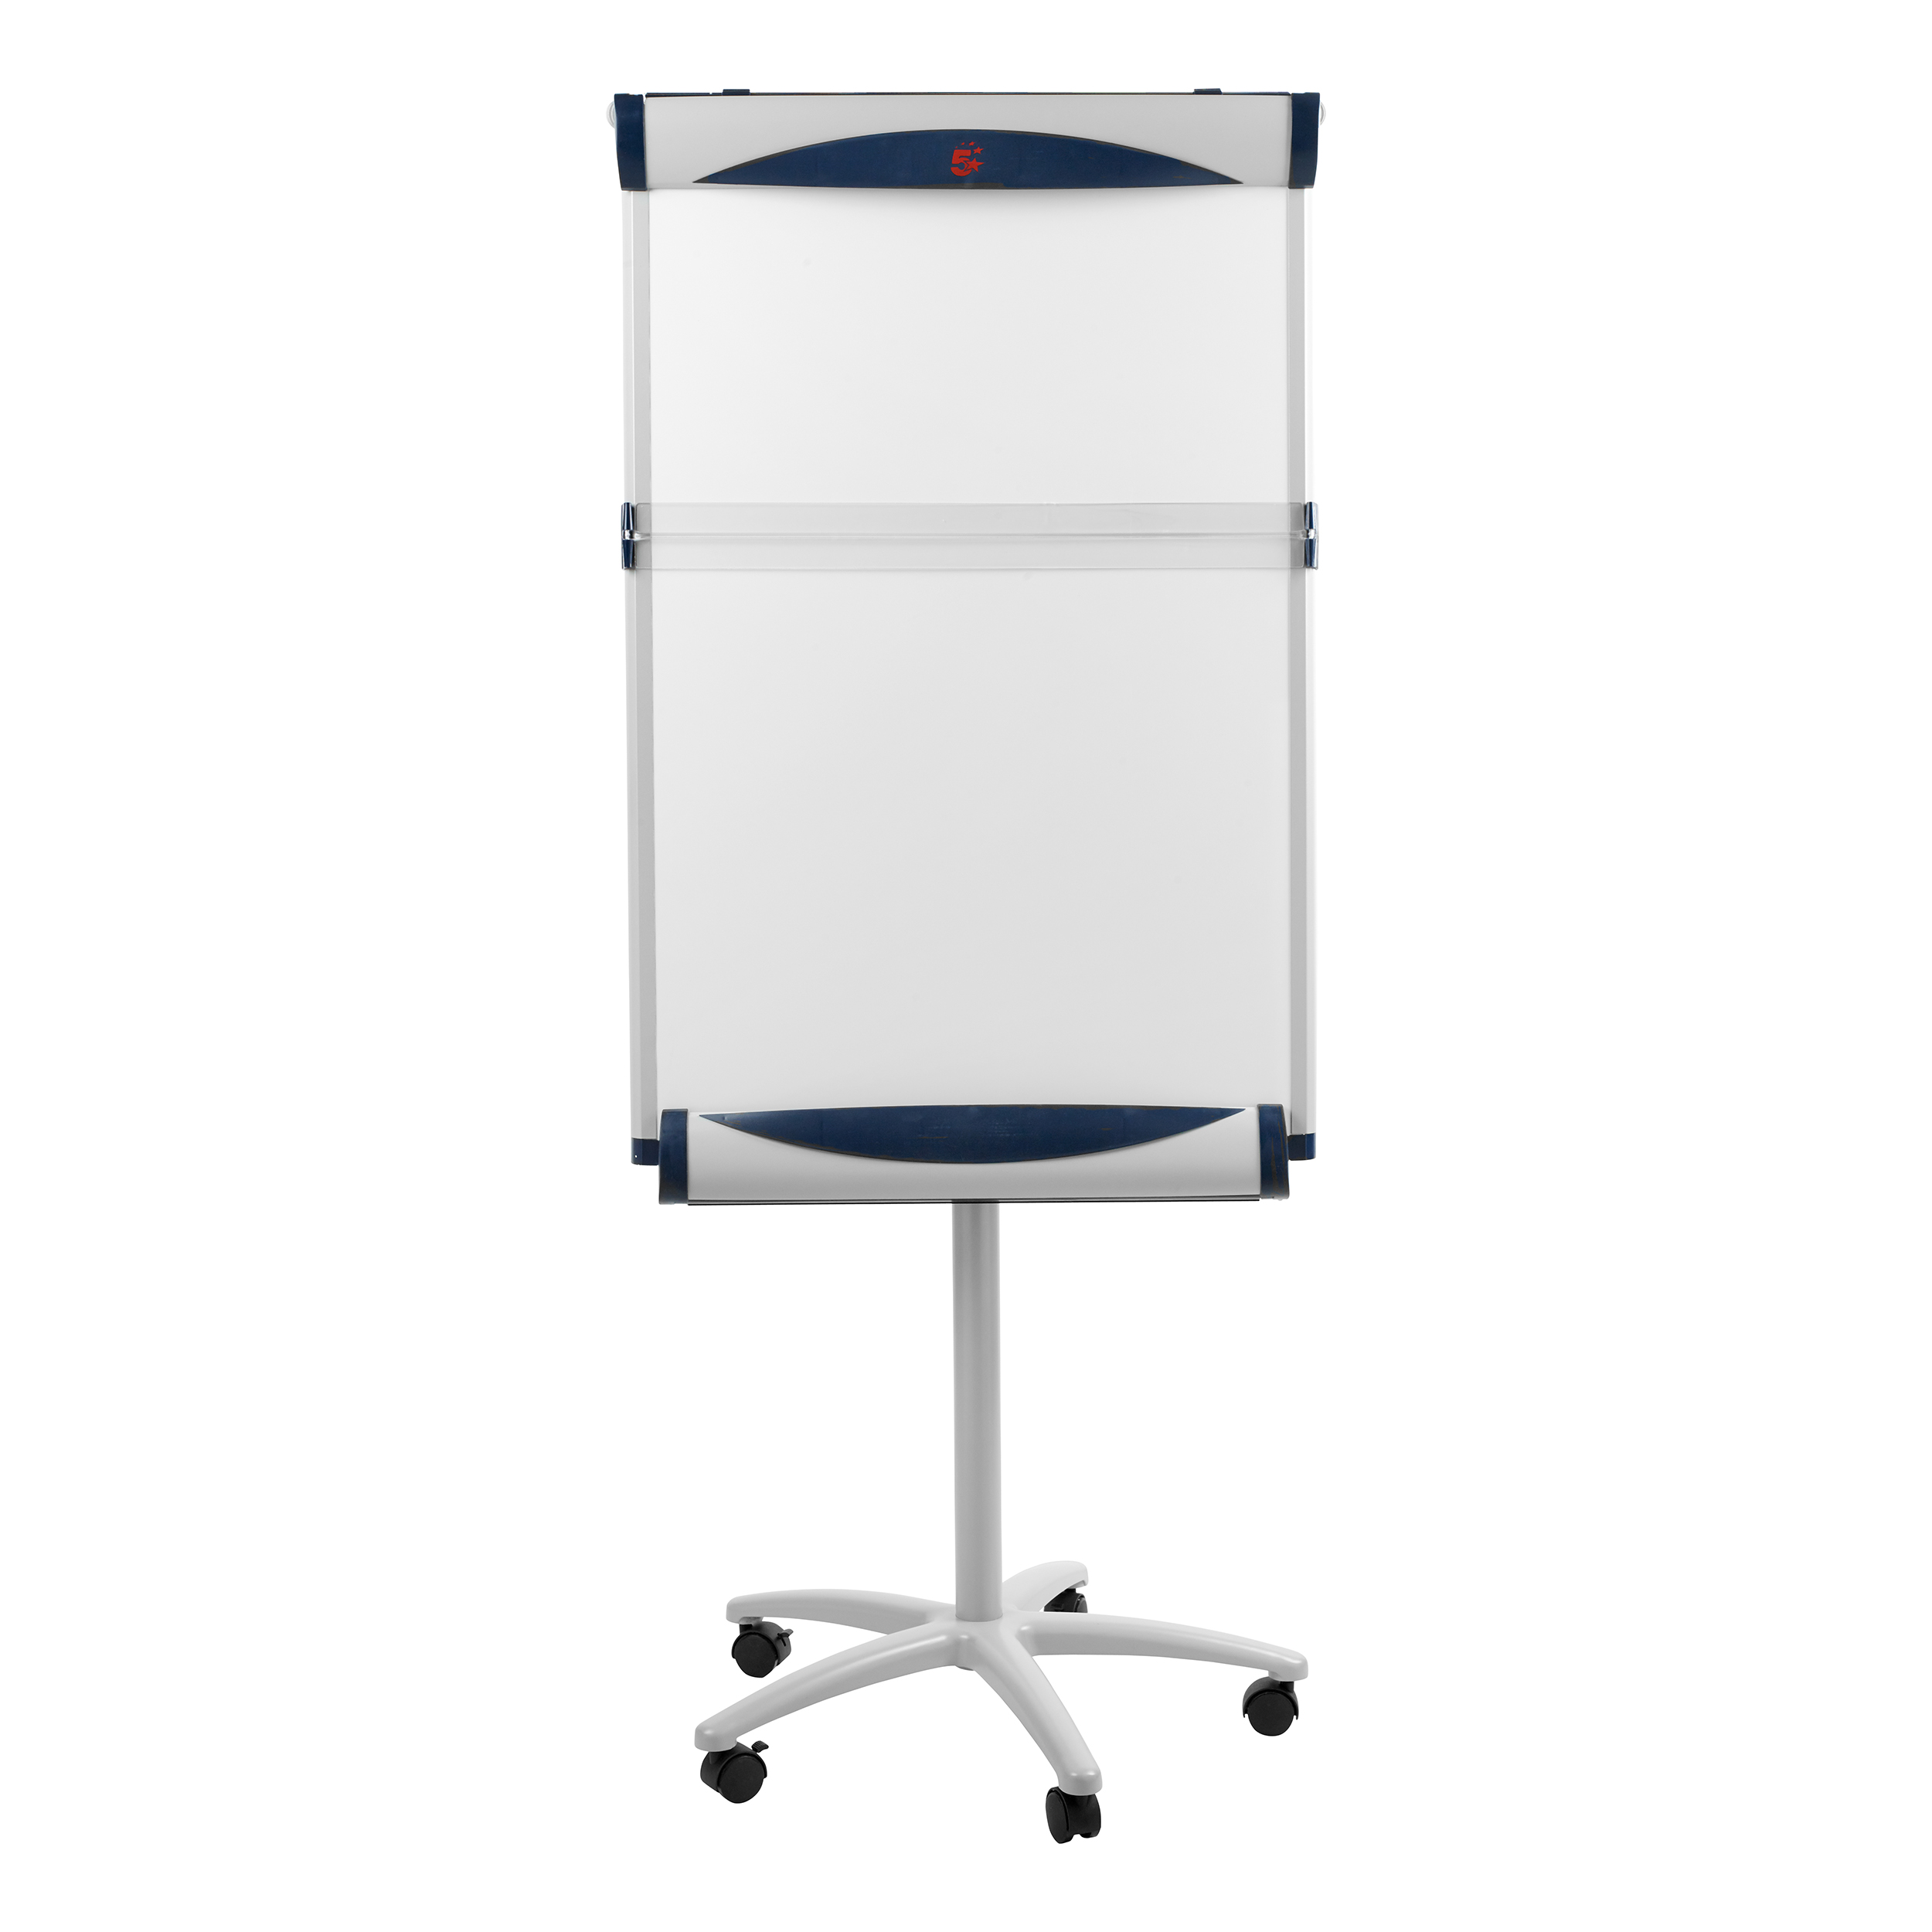 5 Star Premier Mobile Executive Easel Magnetic Mobile on 3 Castors for Pads A1 and Euro Code 8102471